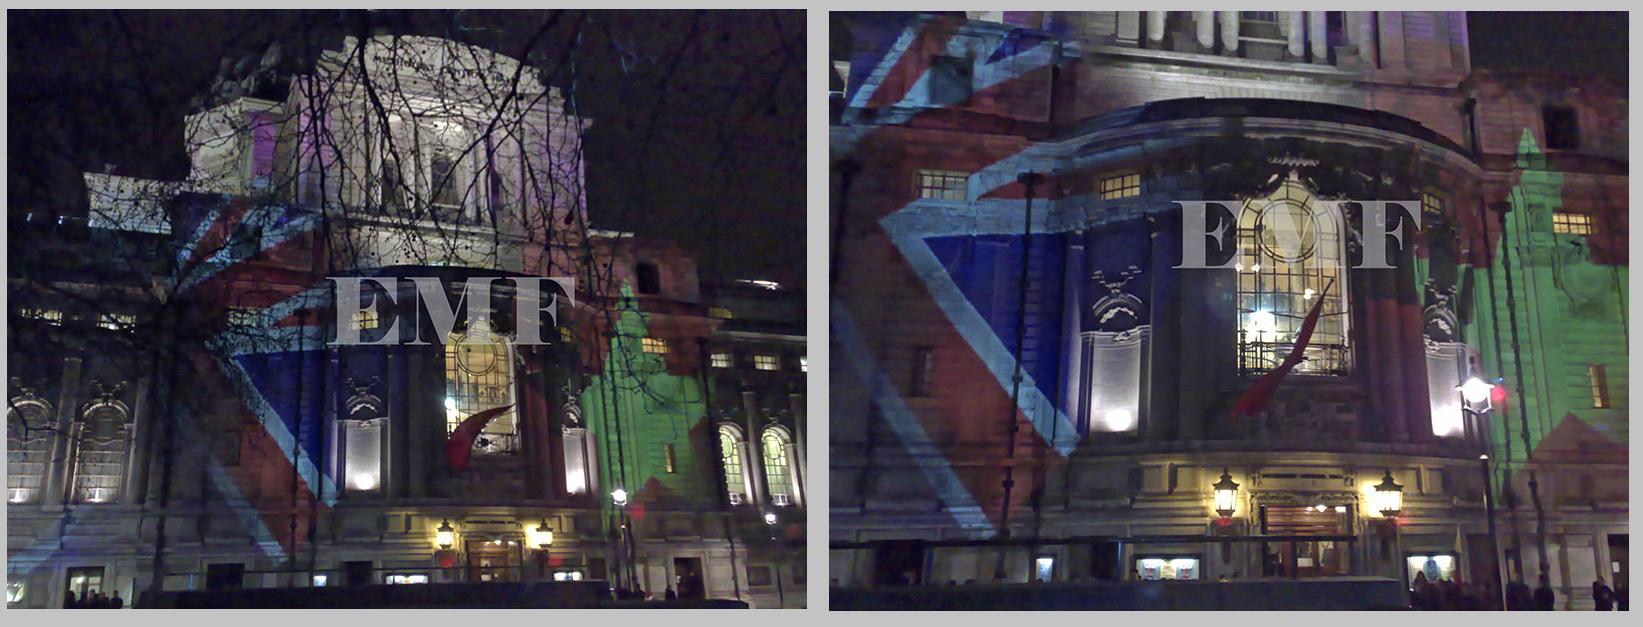 Westminster Methodist Hall Building Projection